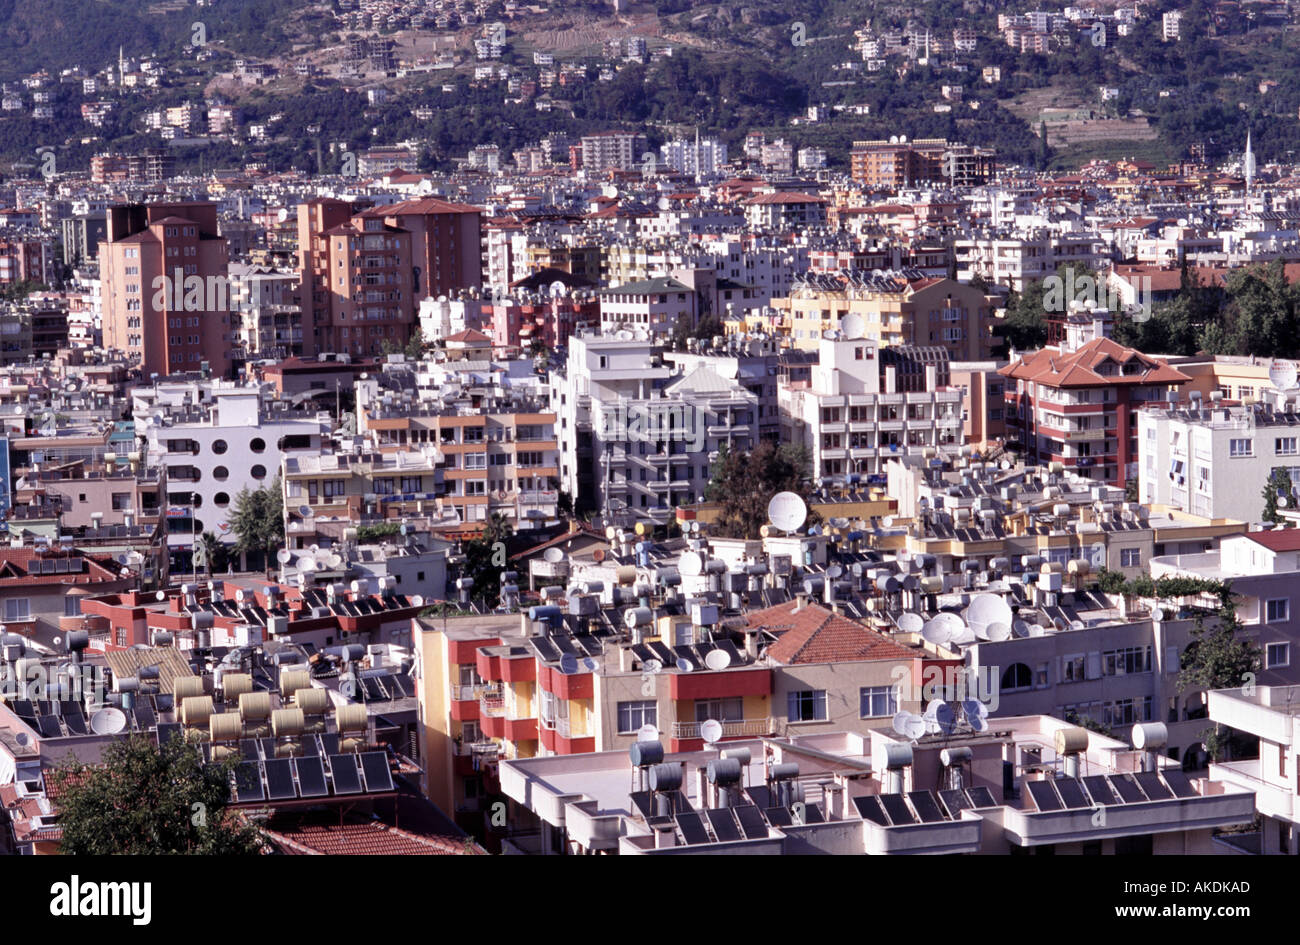 Alanya Turkey city view of buildings and roofs with solar panels for heating satellite dishes and water tanks - Stock Image